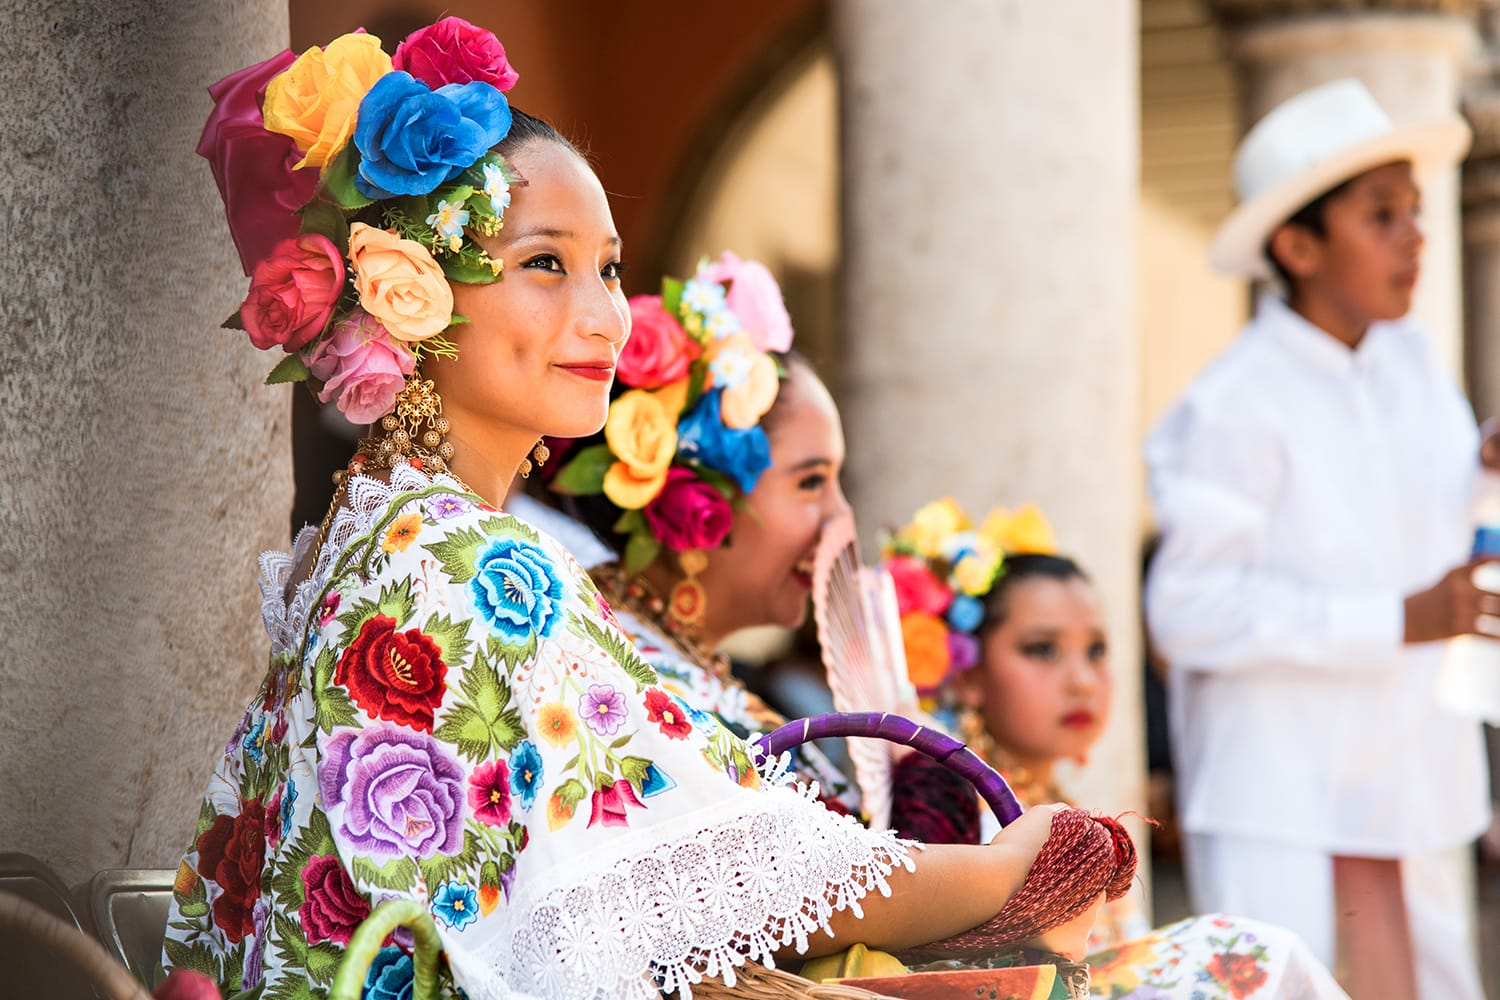 A picture of a young mayan dancer, member of the folkloric ballet of the state of Yucatán. Wearing the typical Yucatán costume